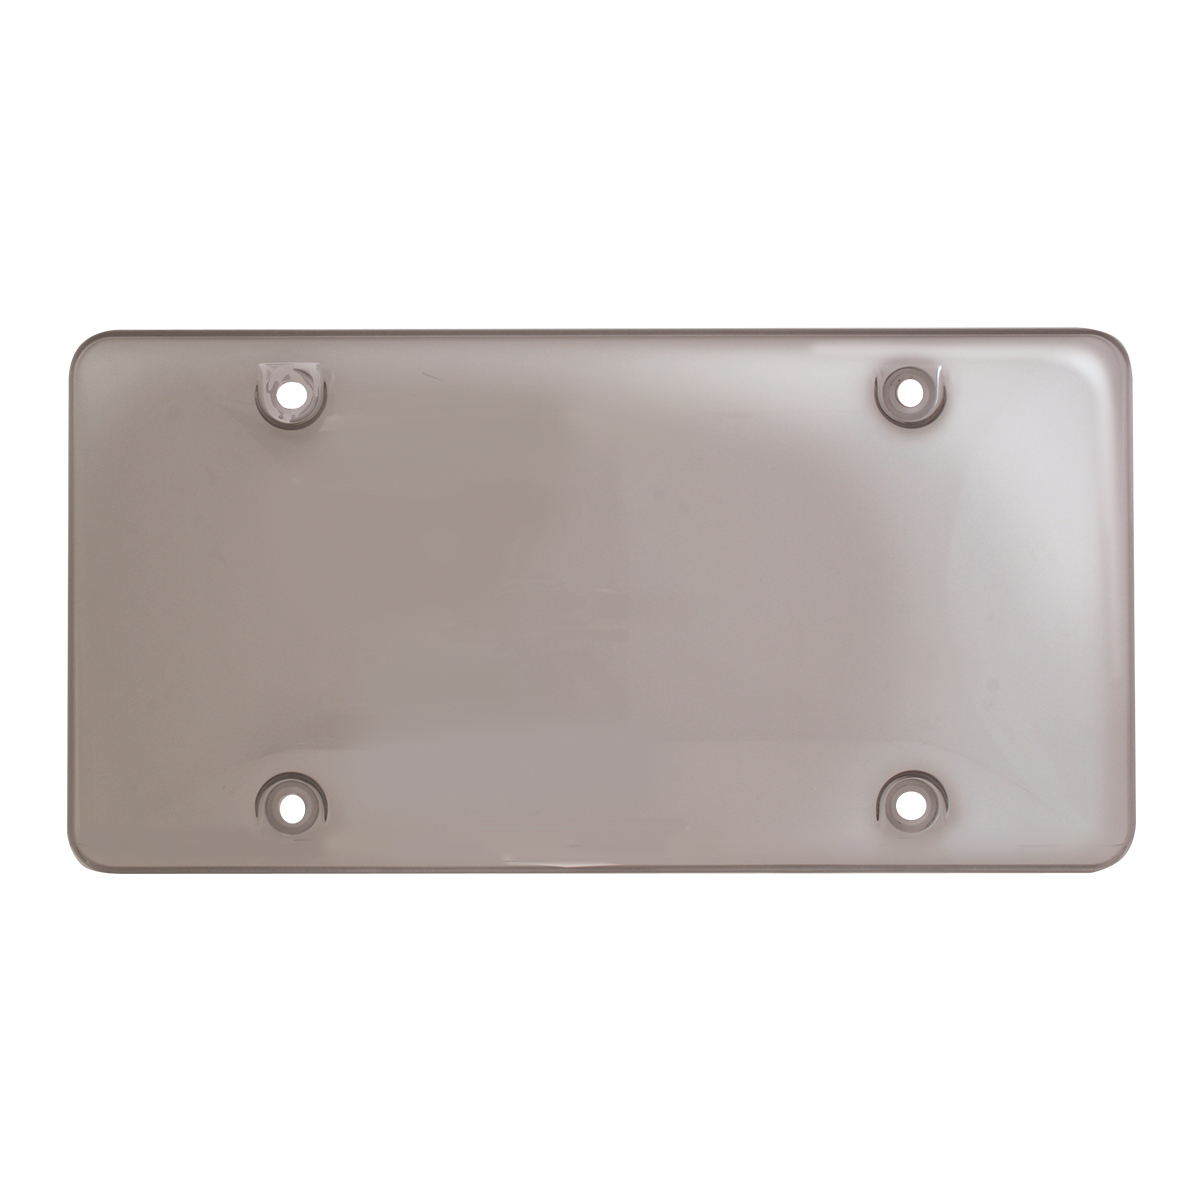 Bubble License Plate Protector - Smoke